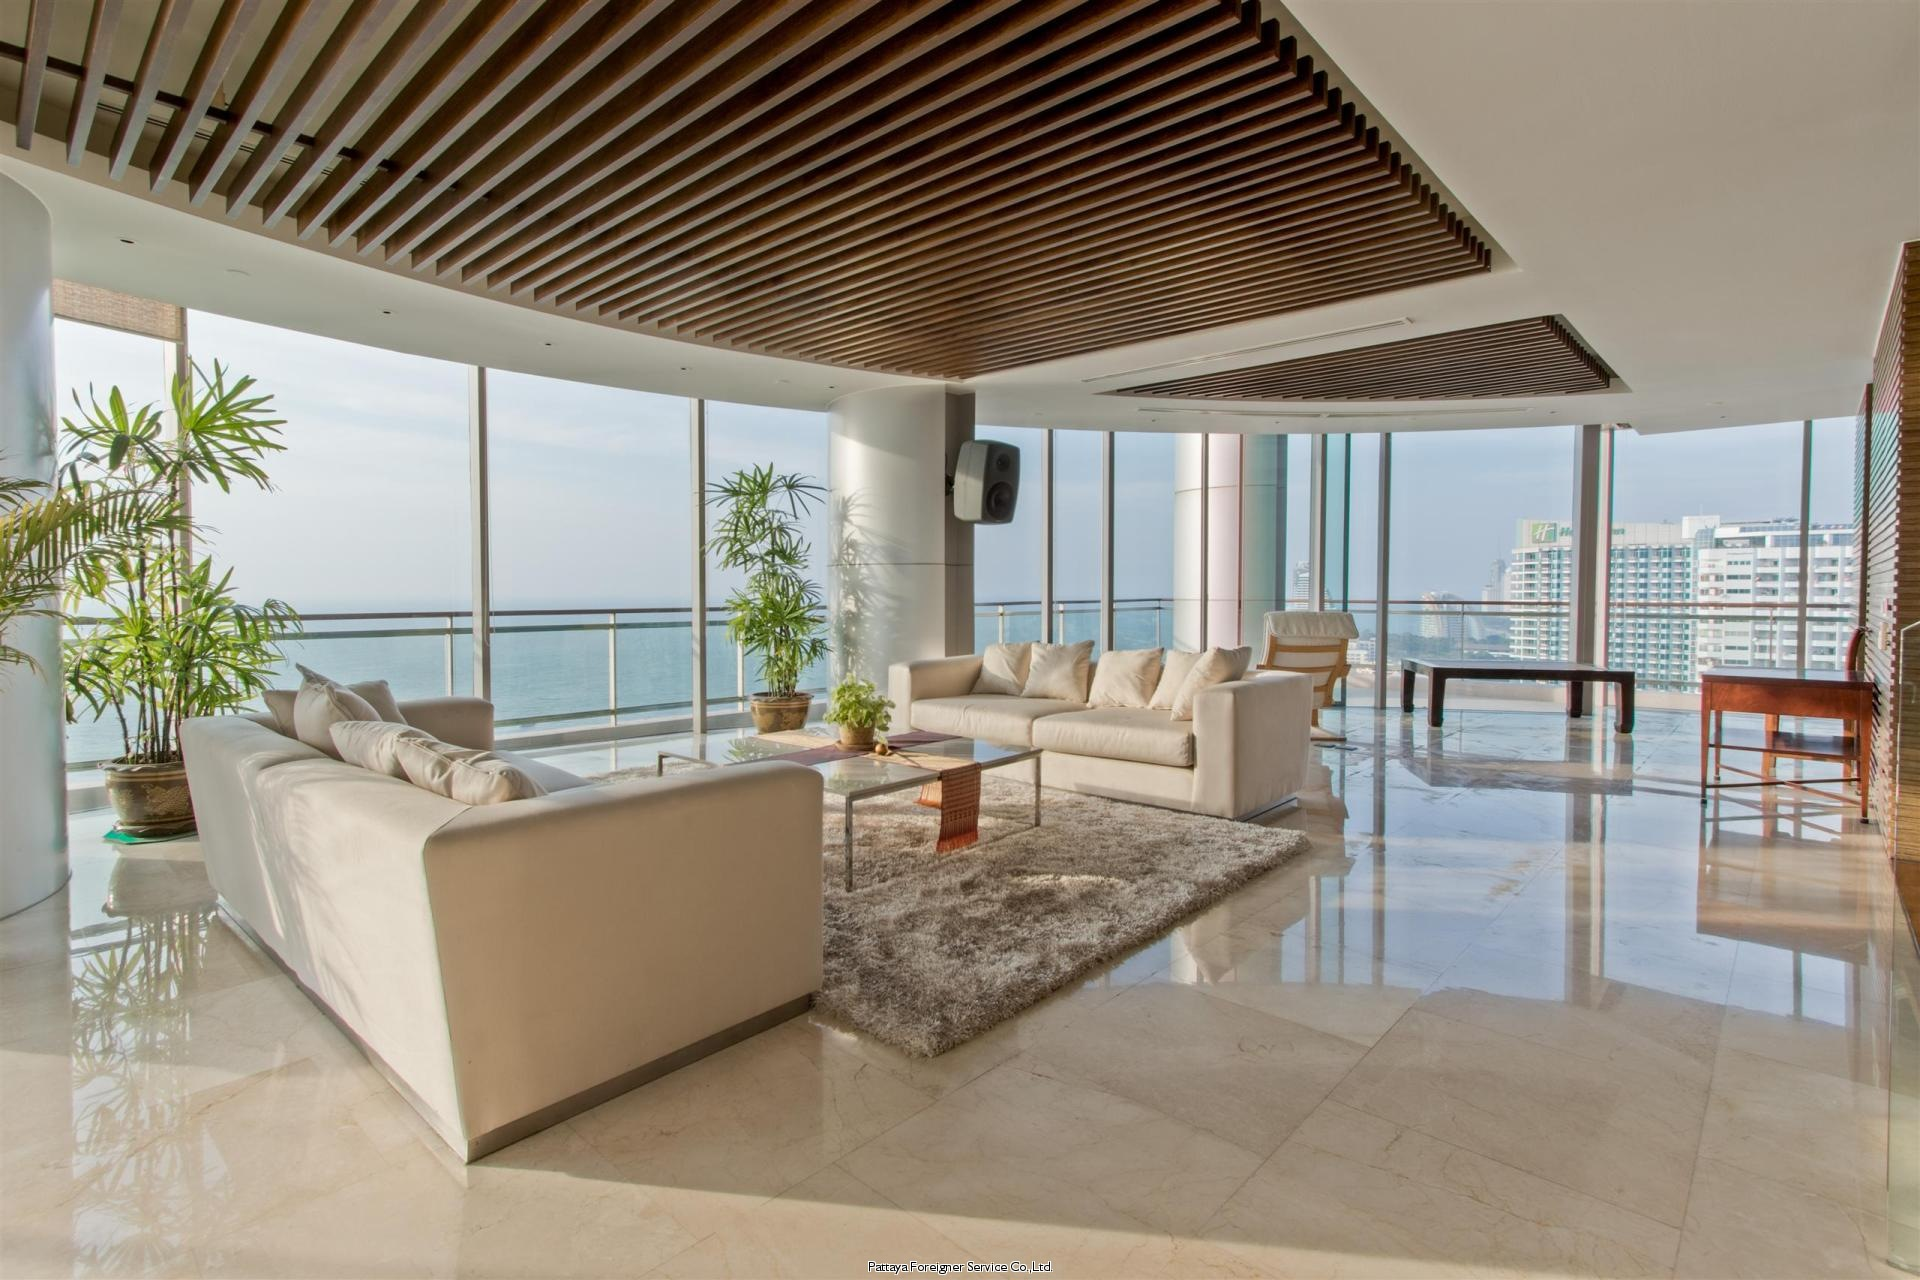 pic-2-Pattaya Foreigner Service Co.Ltd. the most amazing penthouse in pattaya Condominiums for sale in North Pattaya Pattaya